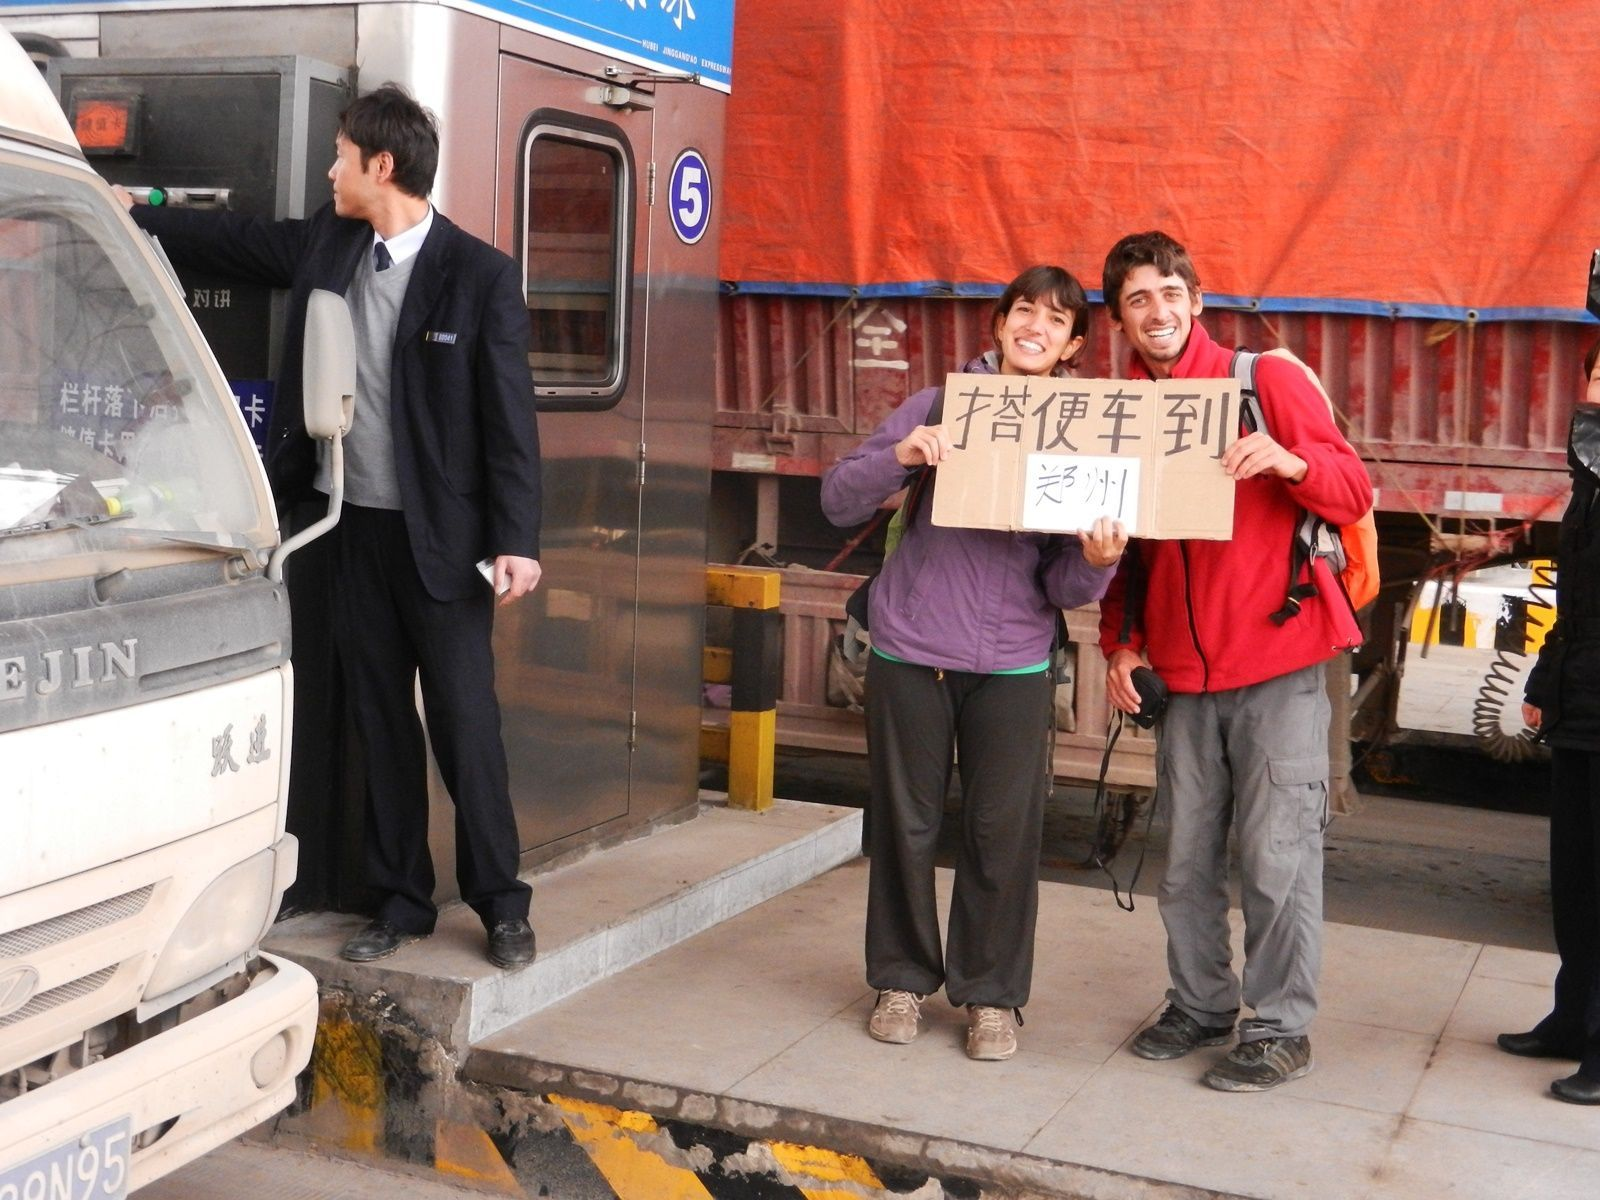 Hitch-hiking in china